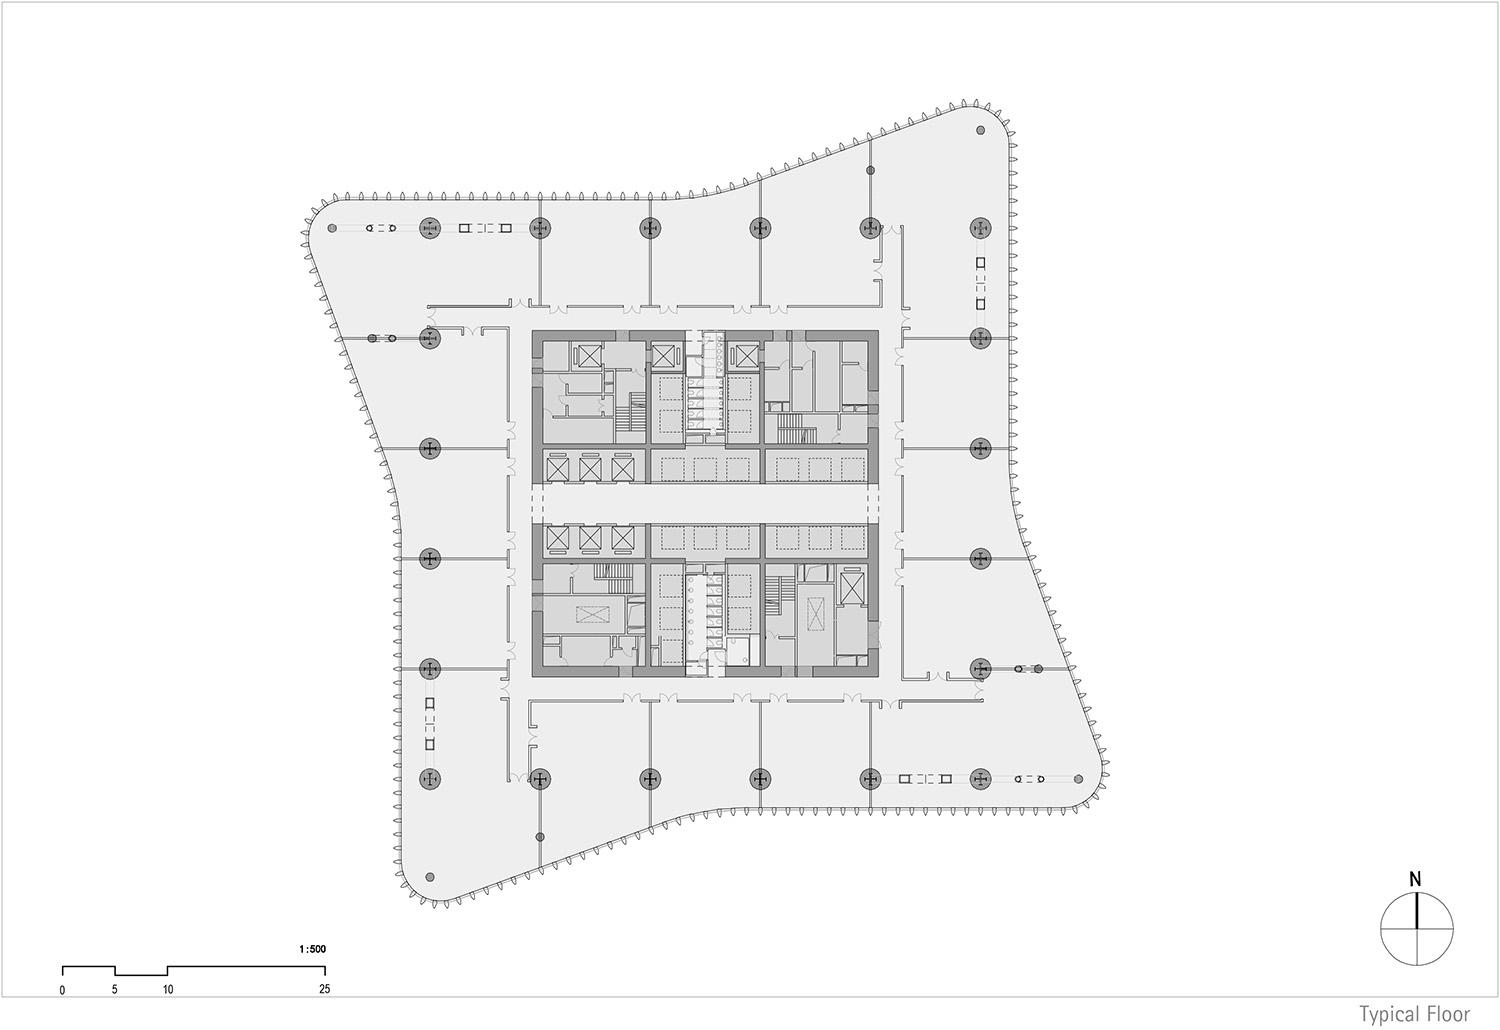 Floor plan north tower, level 12 © gmp Architects}